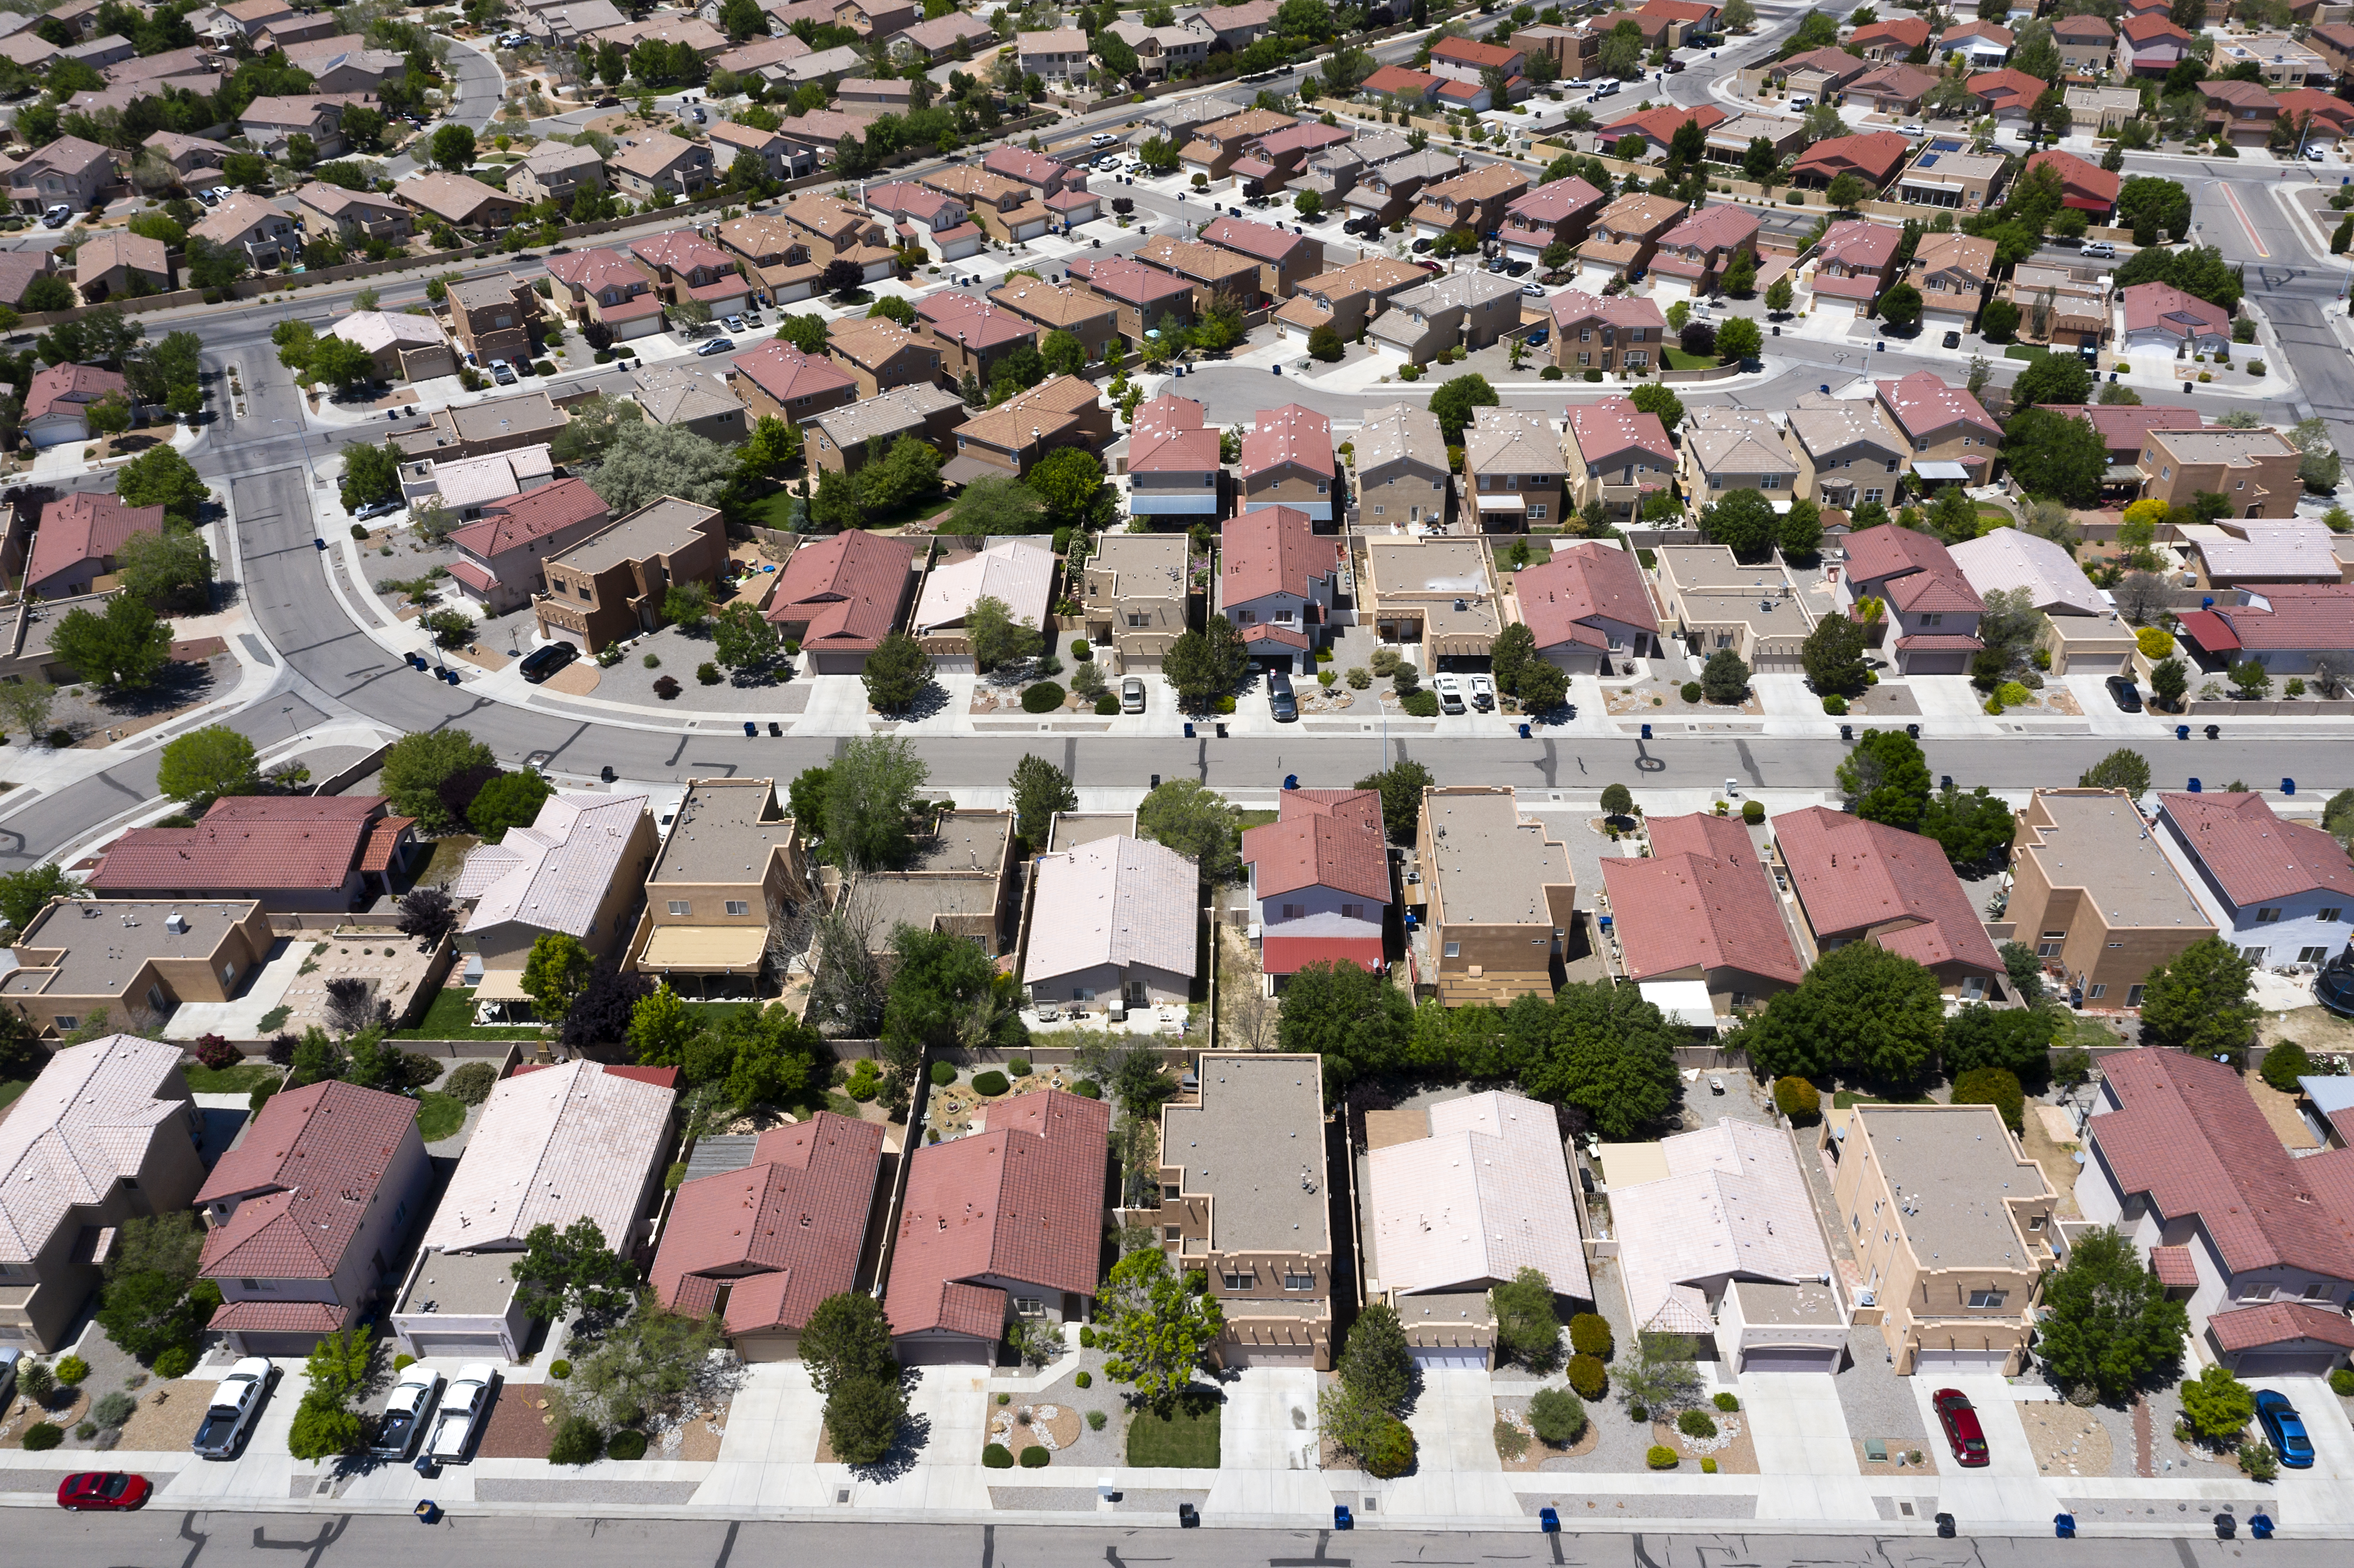 An arial view of a suburban subdivision, filled with single-family houses.